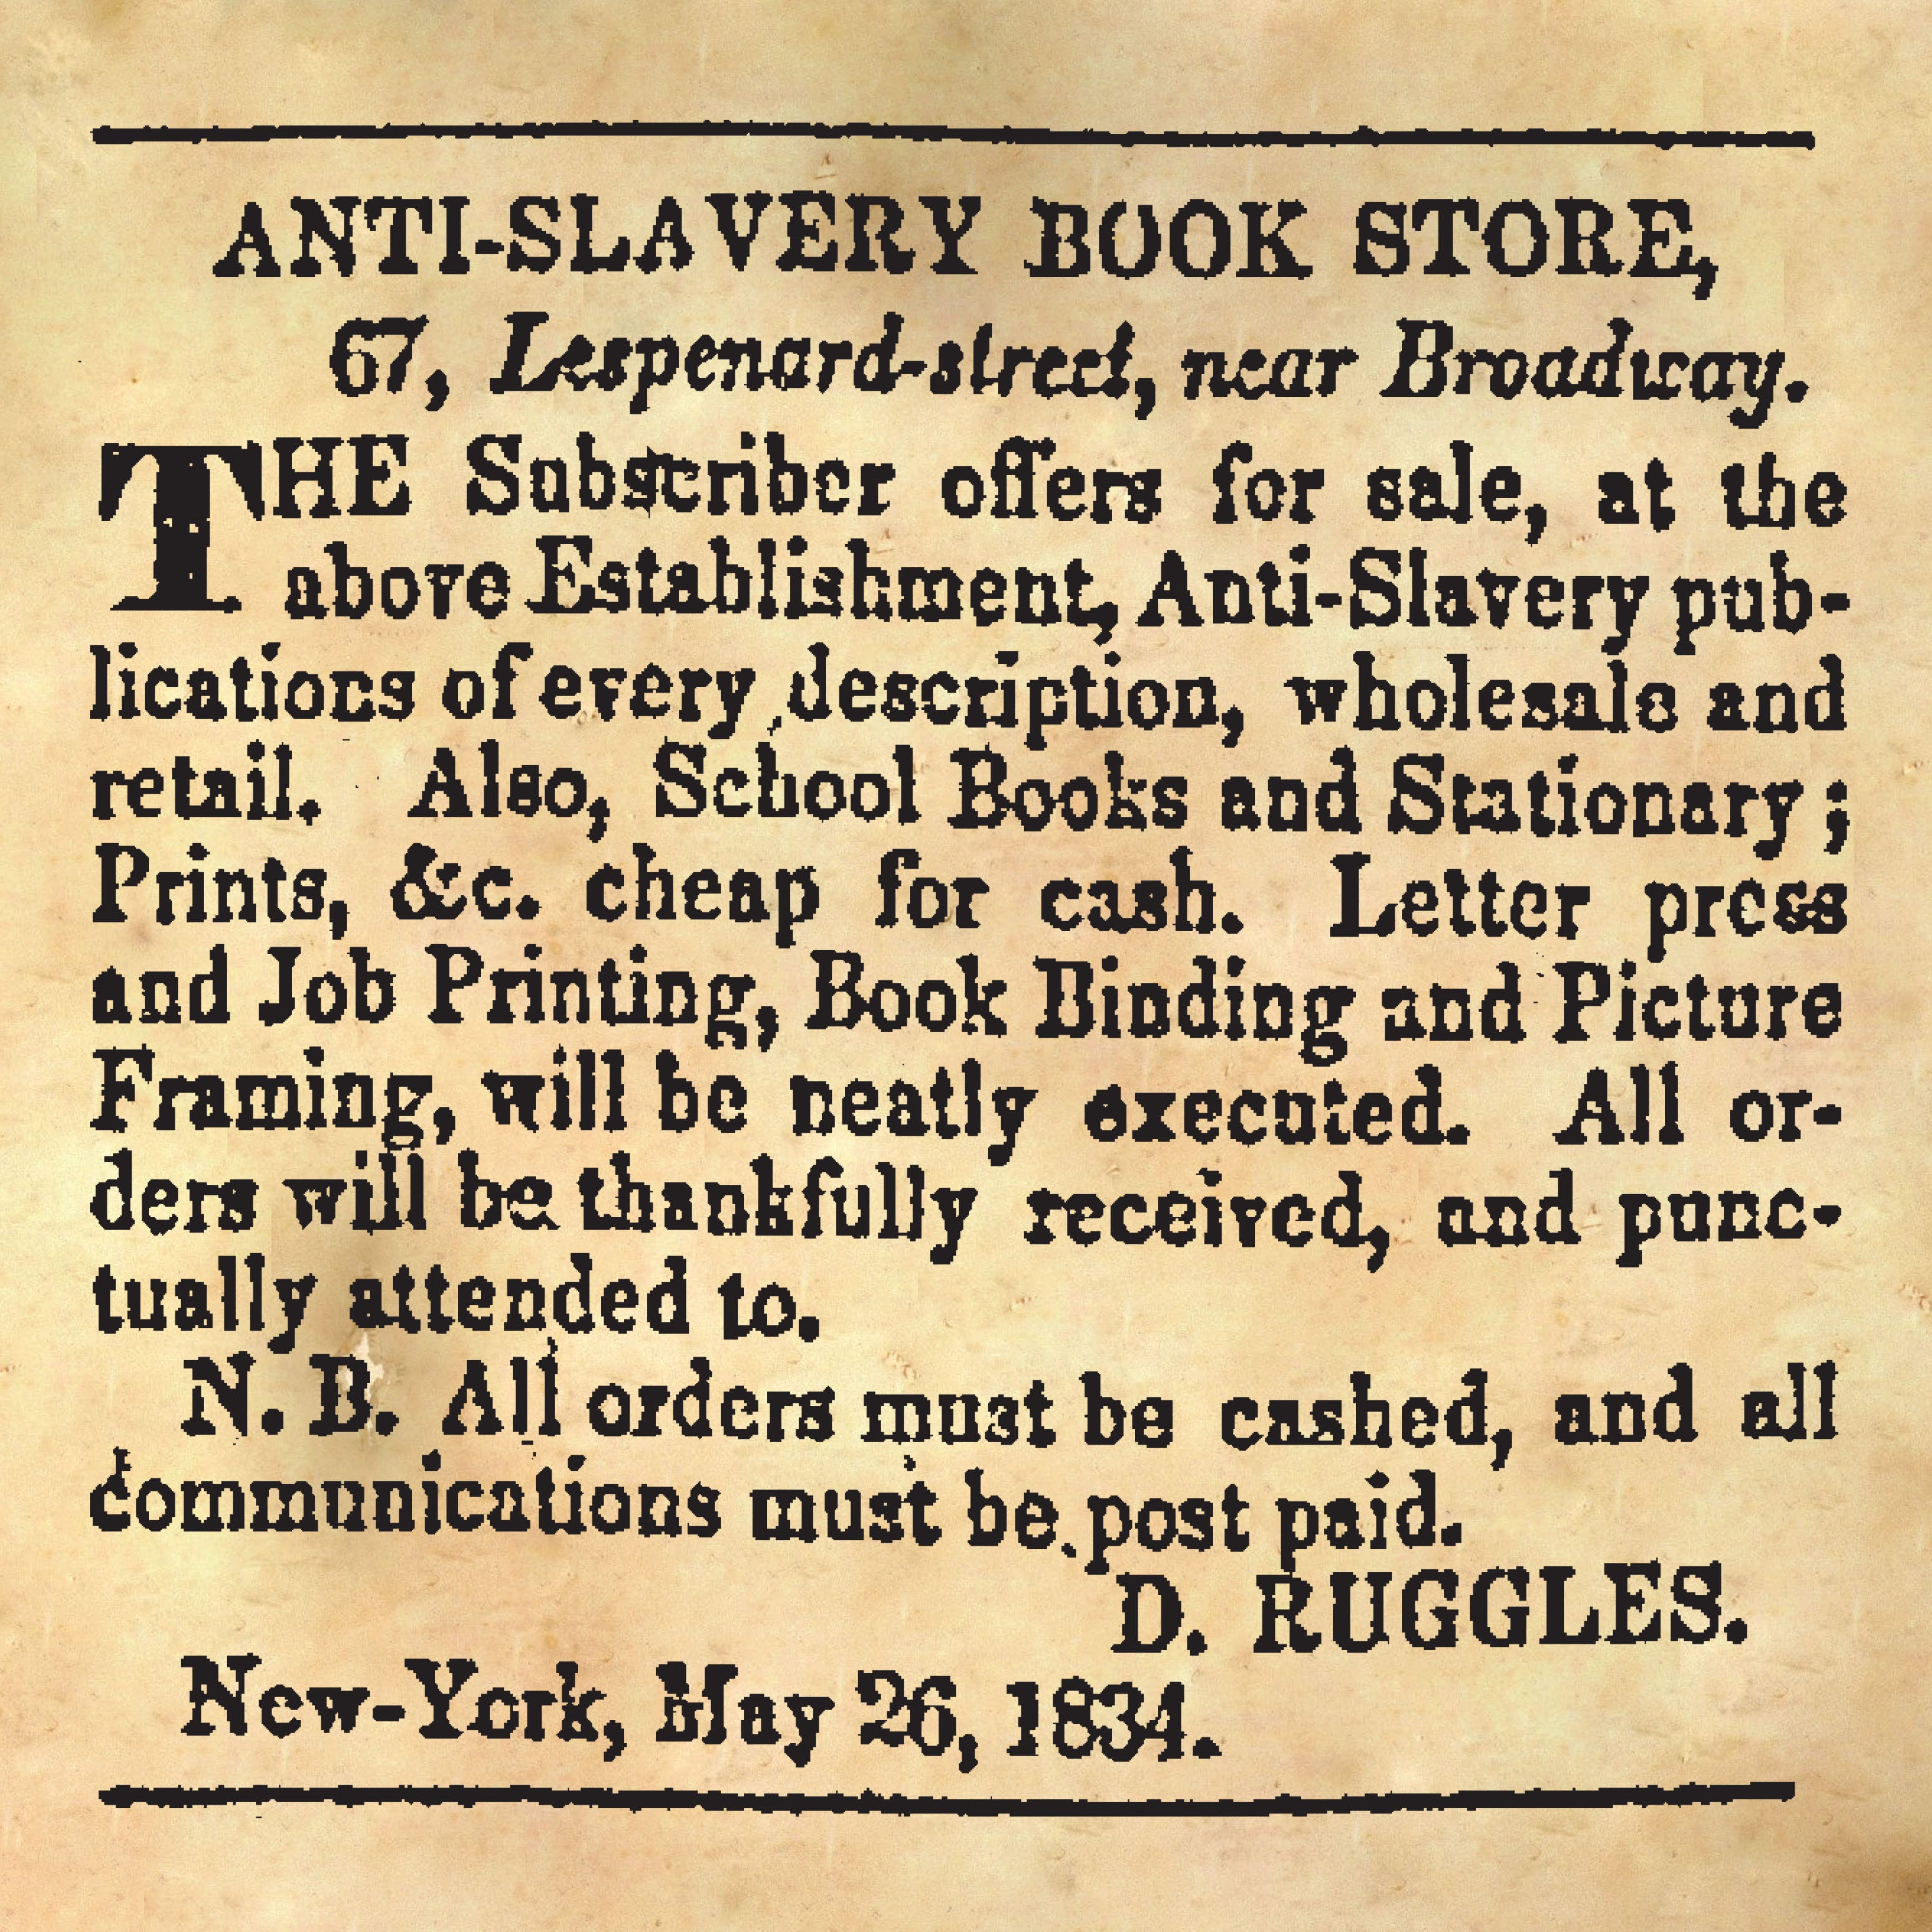 Ruggles' ad promoting his bookstore as it appeared in the Liberator on October 11, 1834. Ruggles would thus become the first known African-American bookseller in the United States.